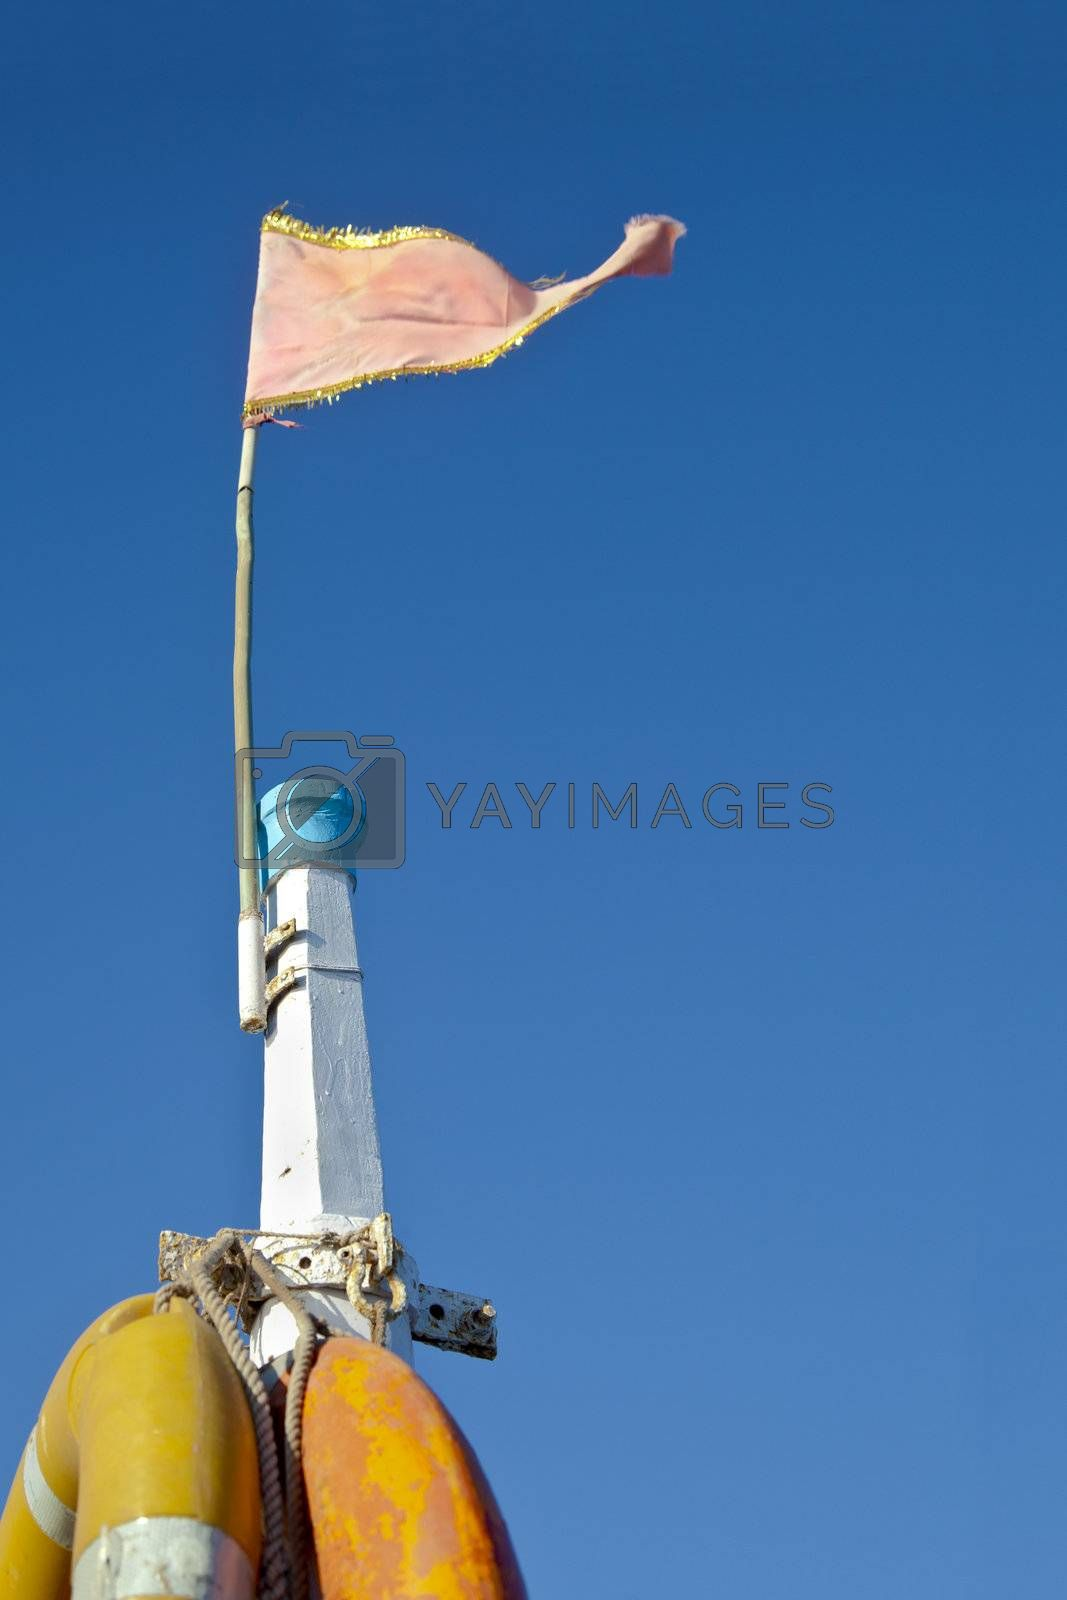 Dwarka Roadtrip. Concept of Rich blue sky split by a white mast bearing yellow life buoys and a pink frayed flag. Generic shot location Bet Dwarka, Gujarat, India